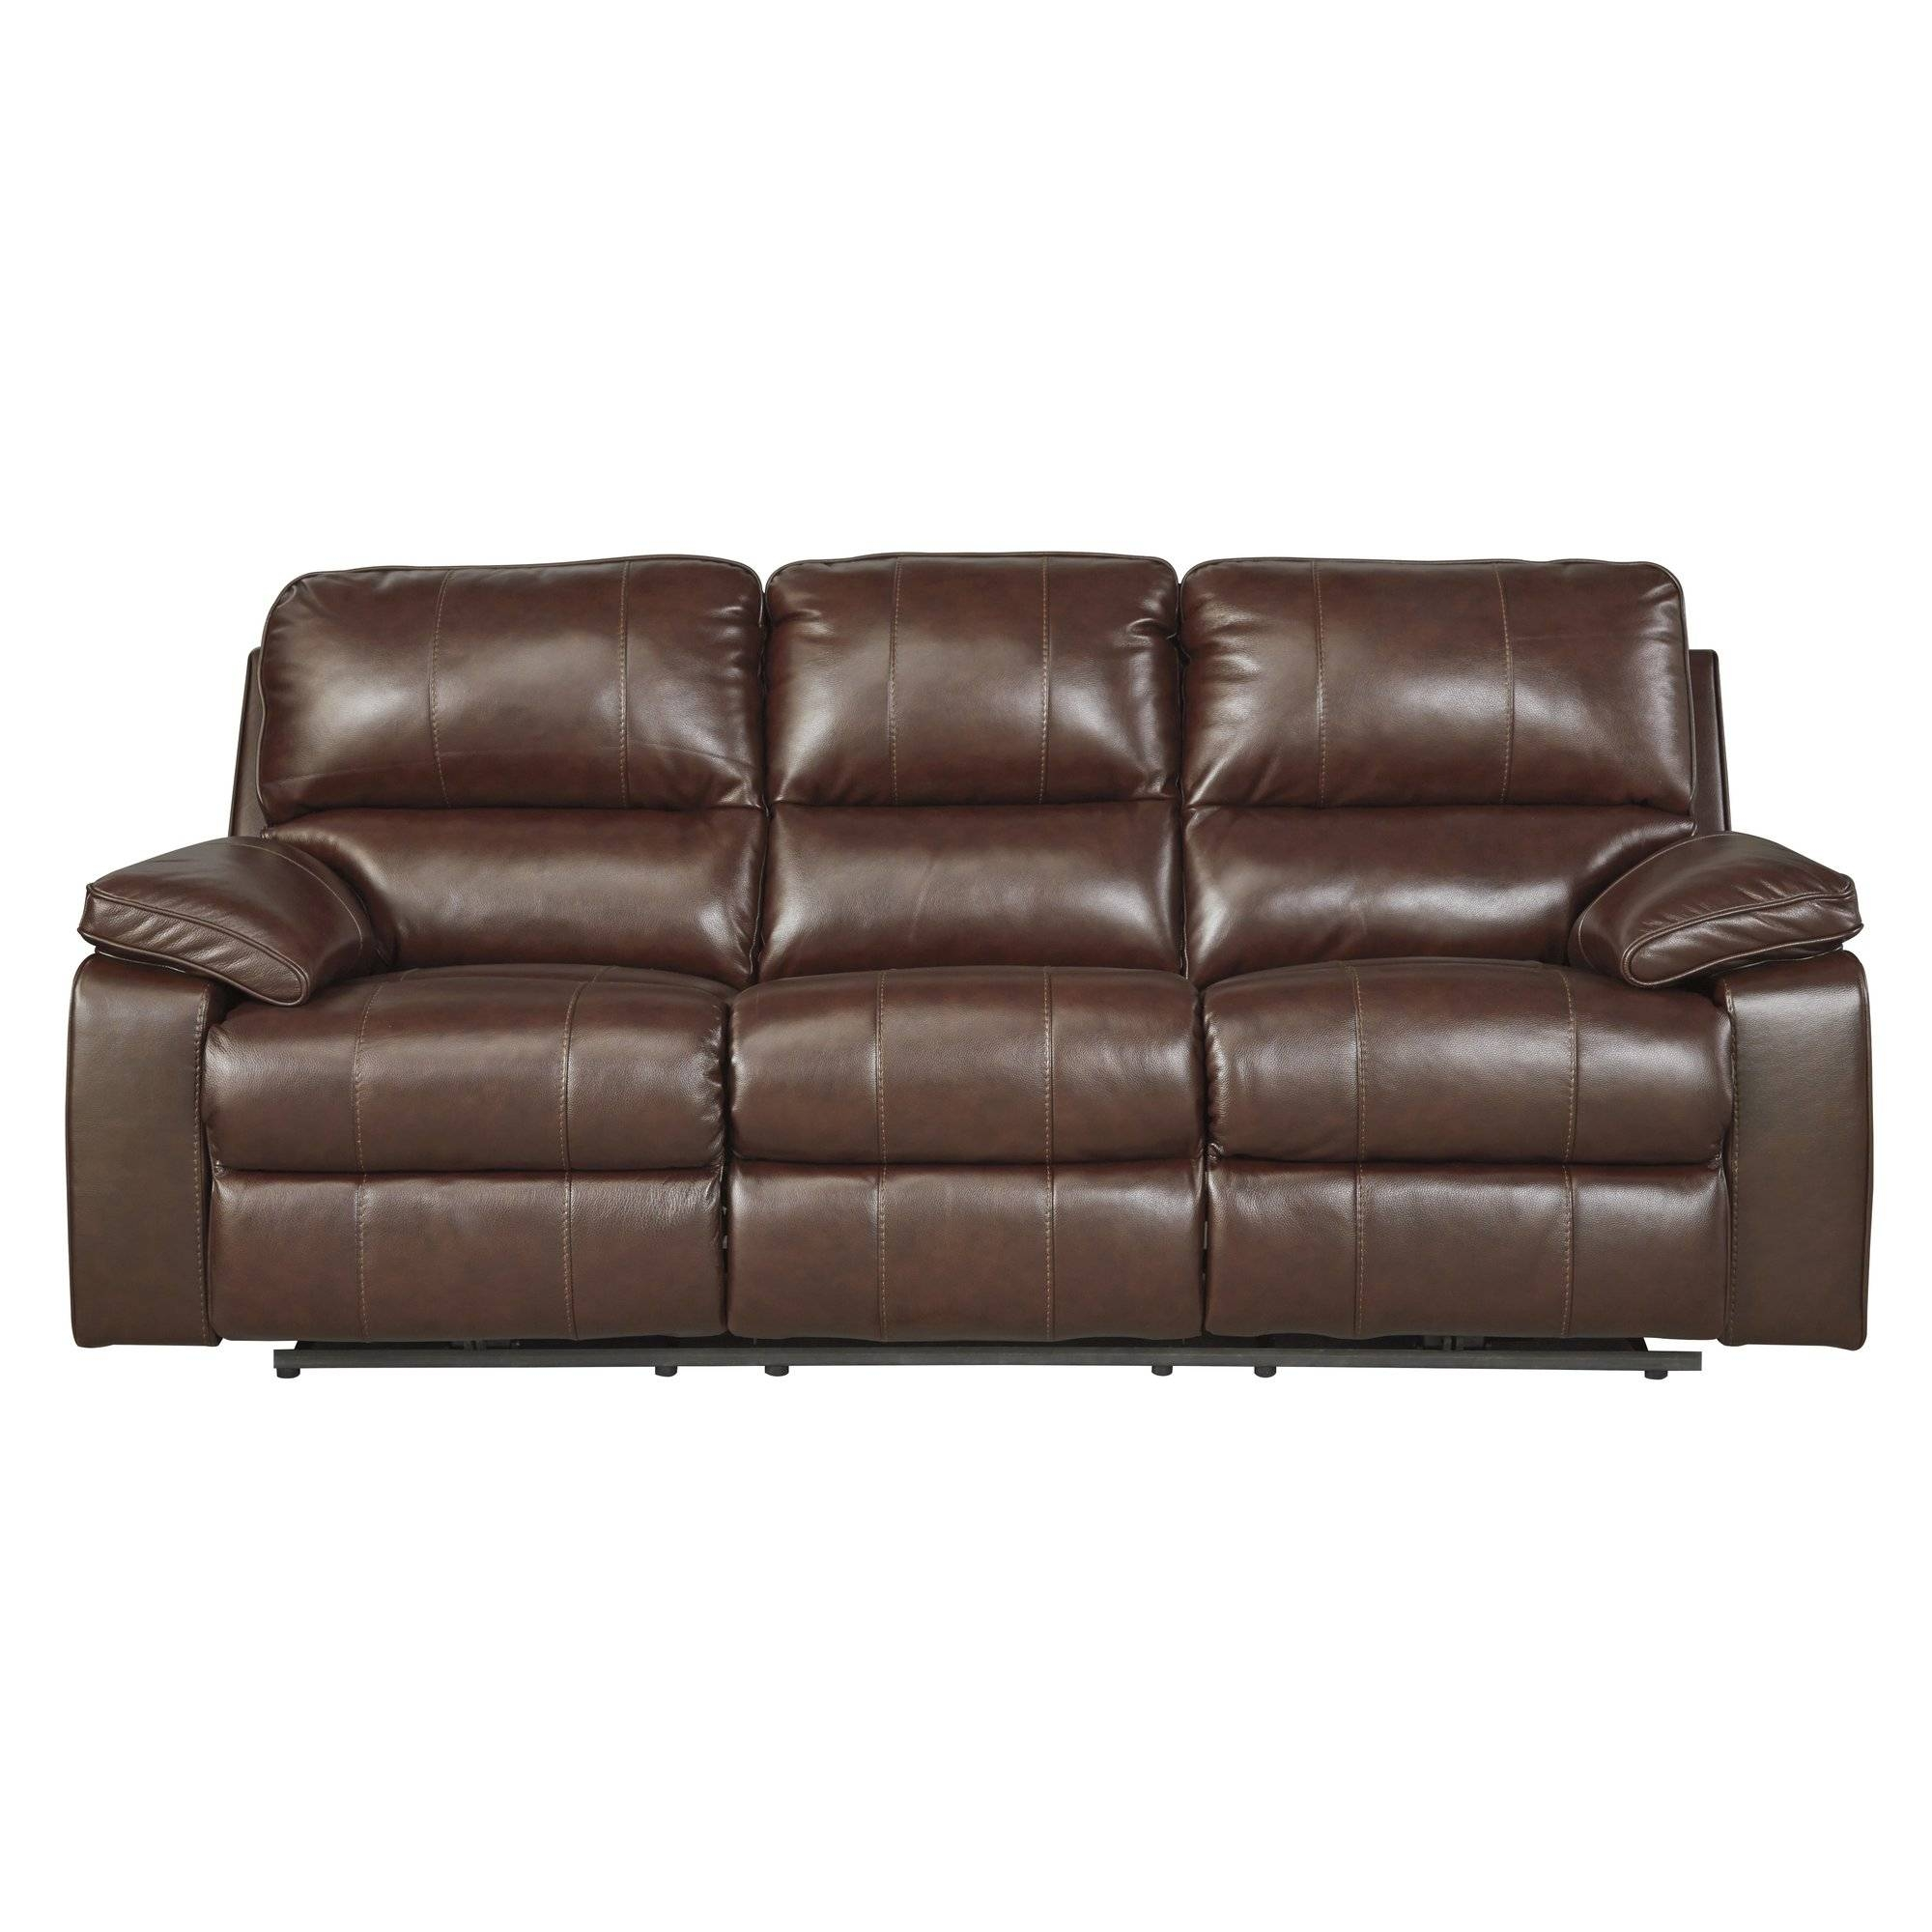 Red Barrel Studio Stratford Reclining Sofa | Wayfair inside Stratford Sofas (Image 18 of 30)